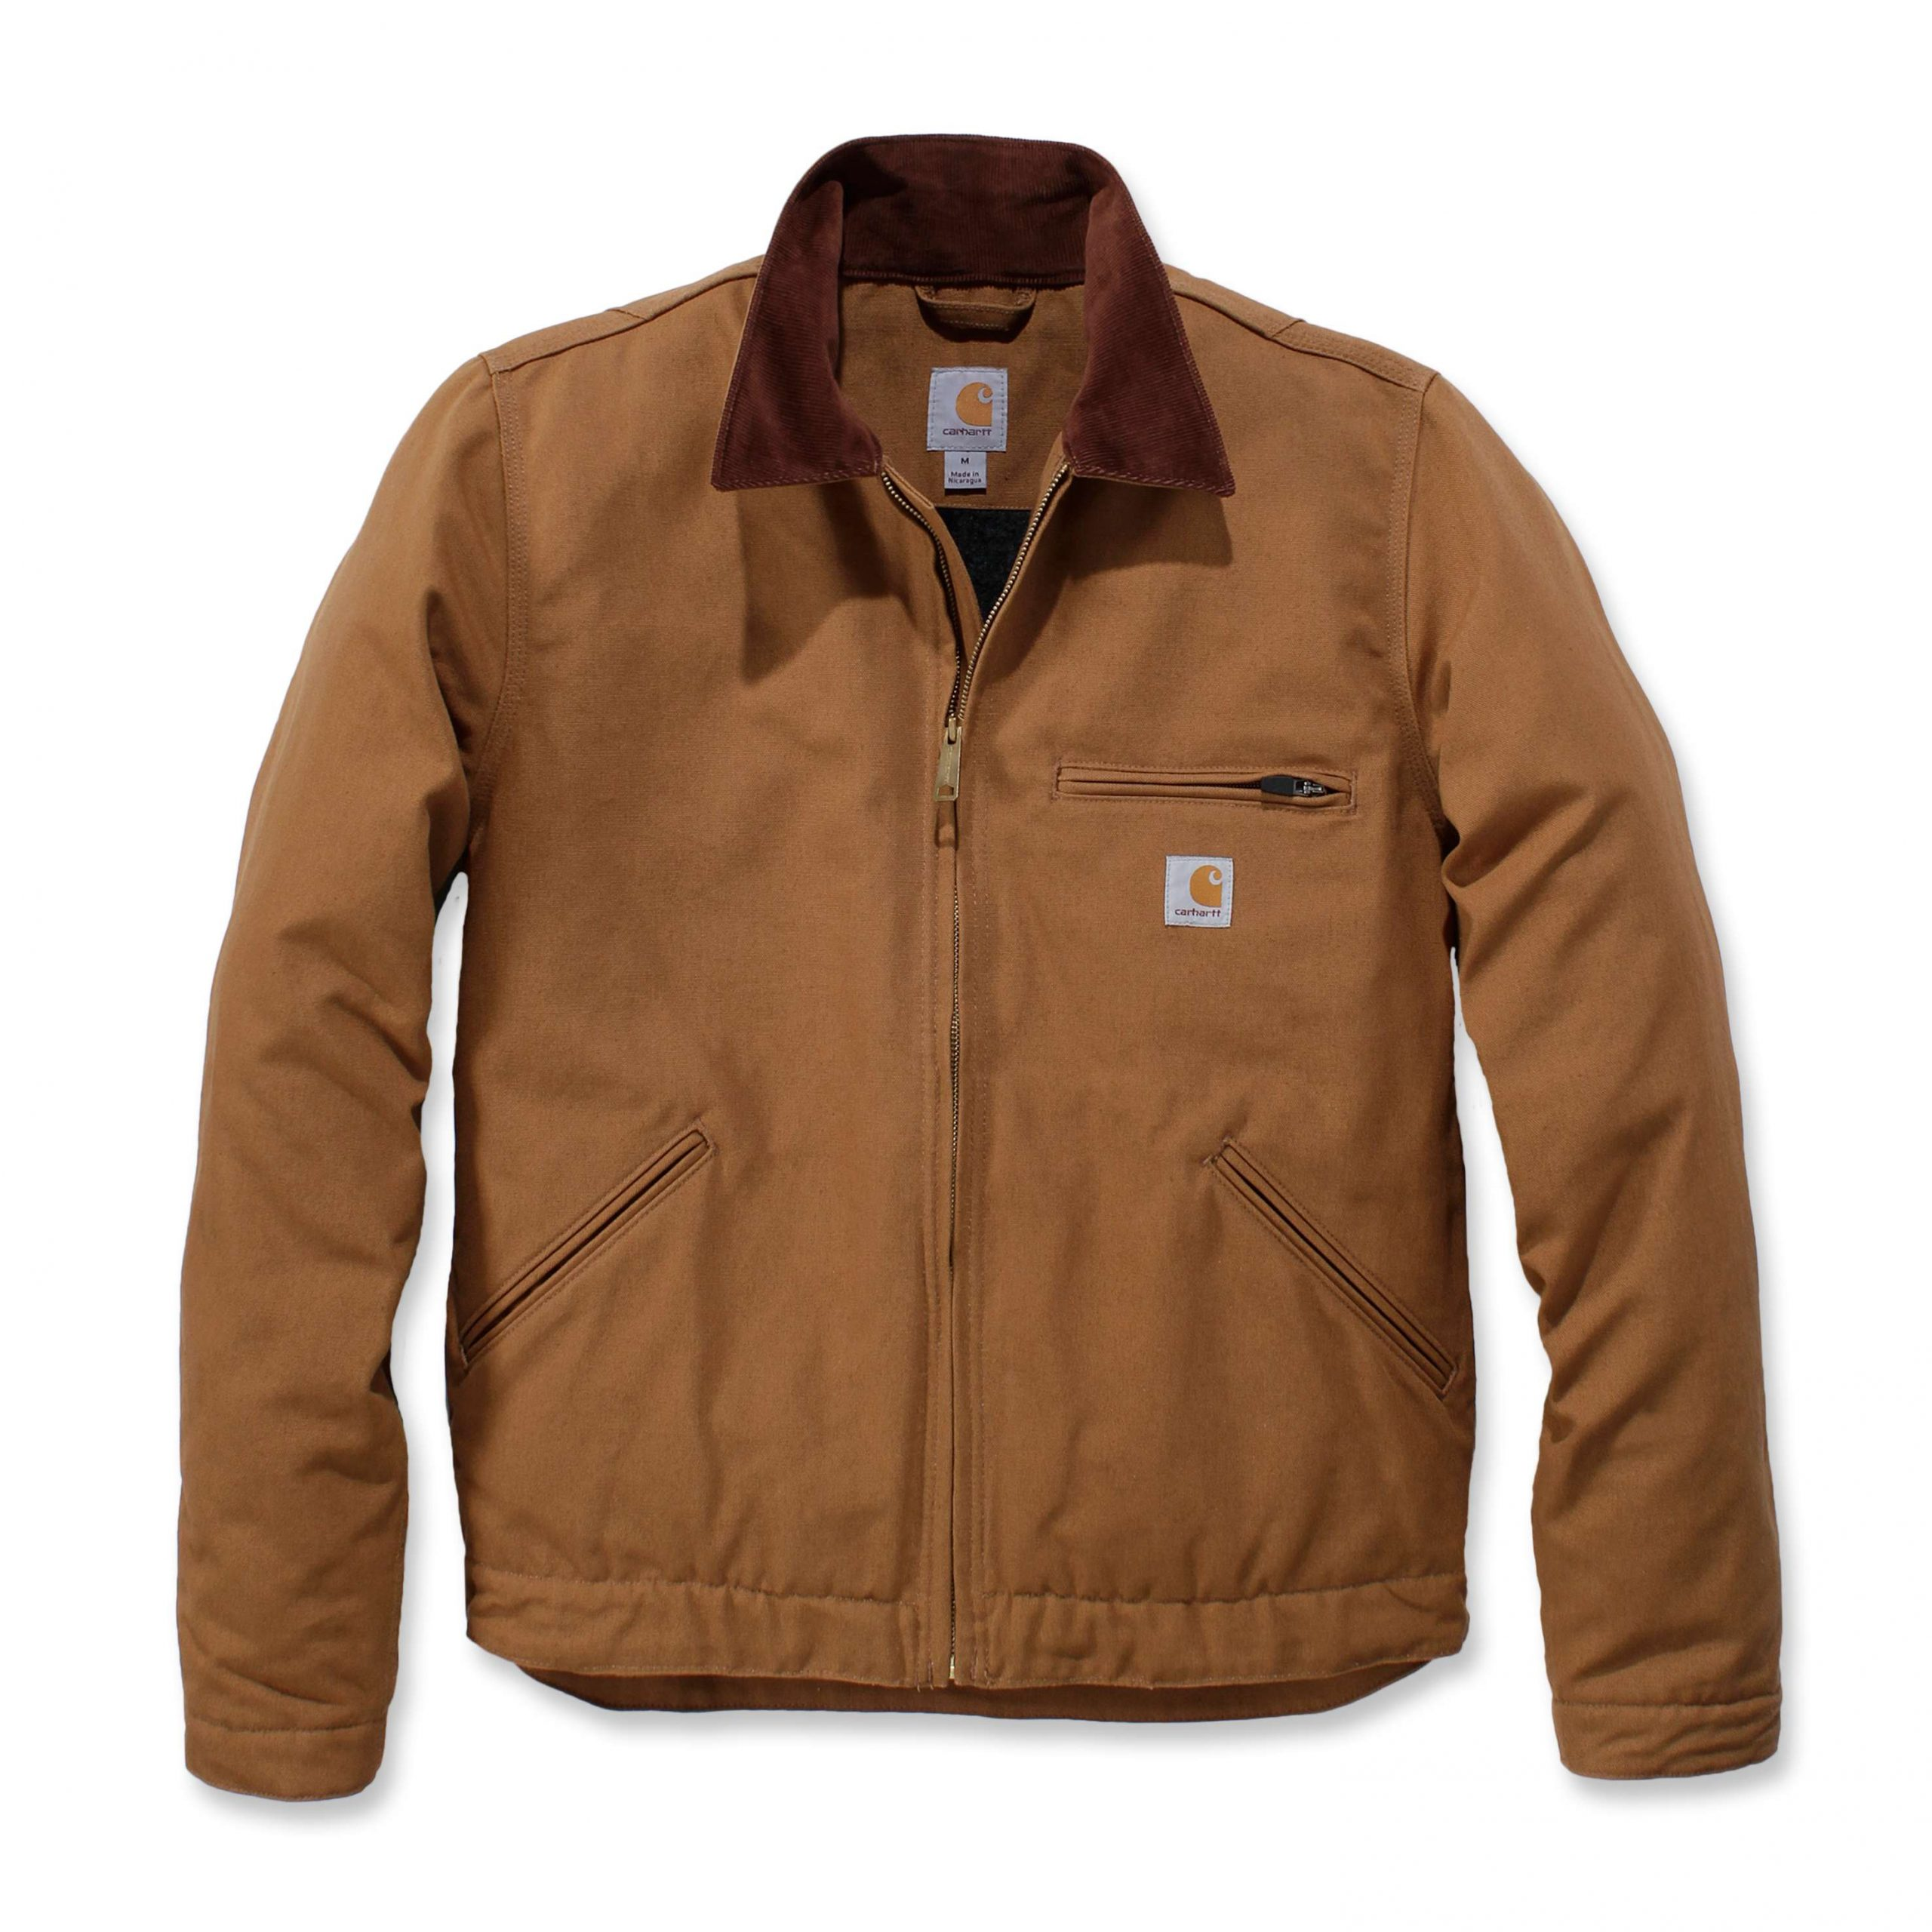 Carhartt Duck Detroit Blanket Lined jacket